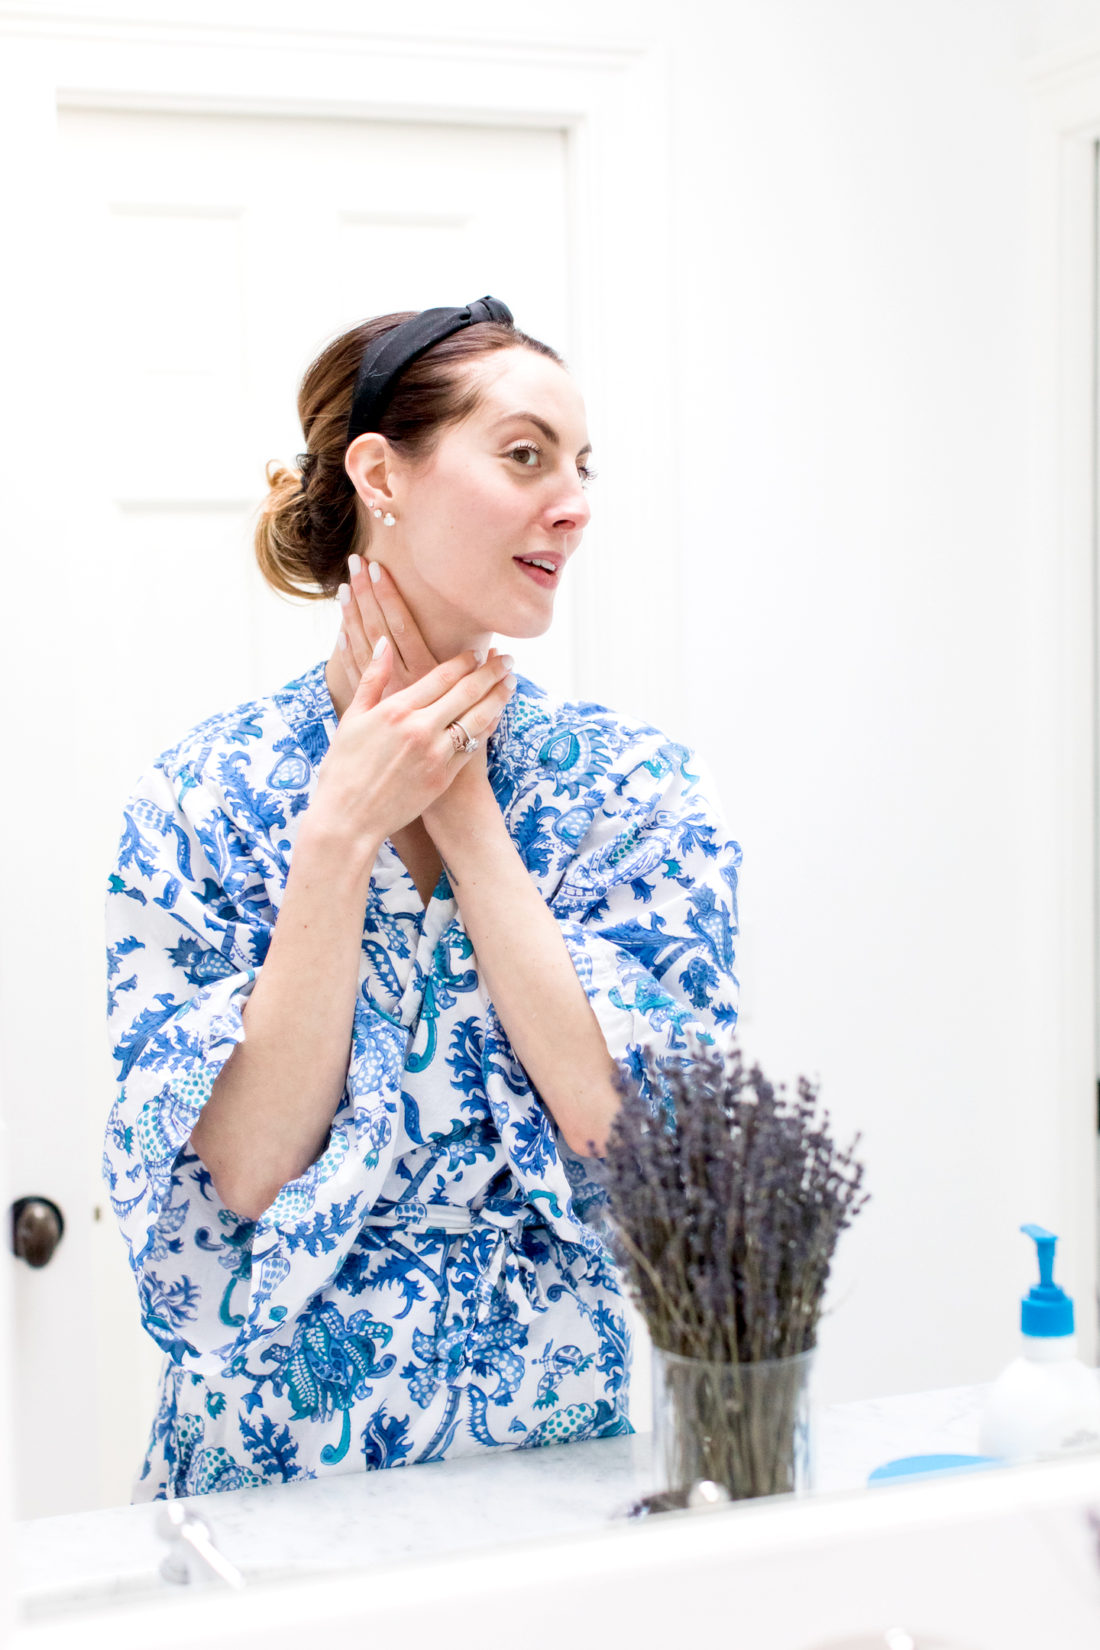 Eva Amurri Martino applies Gentle Basics night cream to her neck and decollete